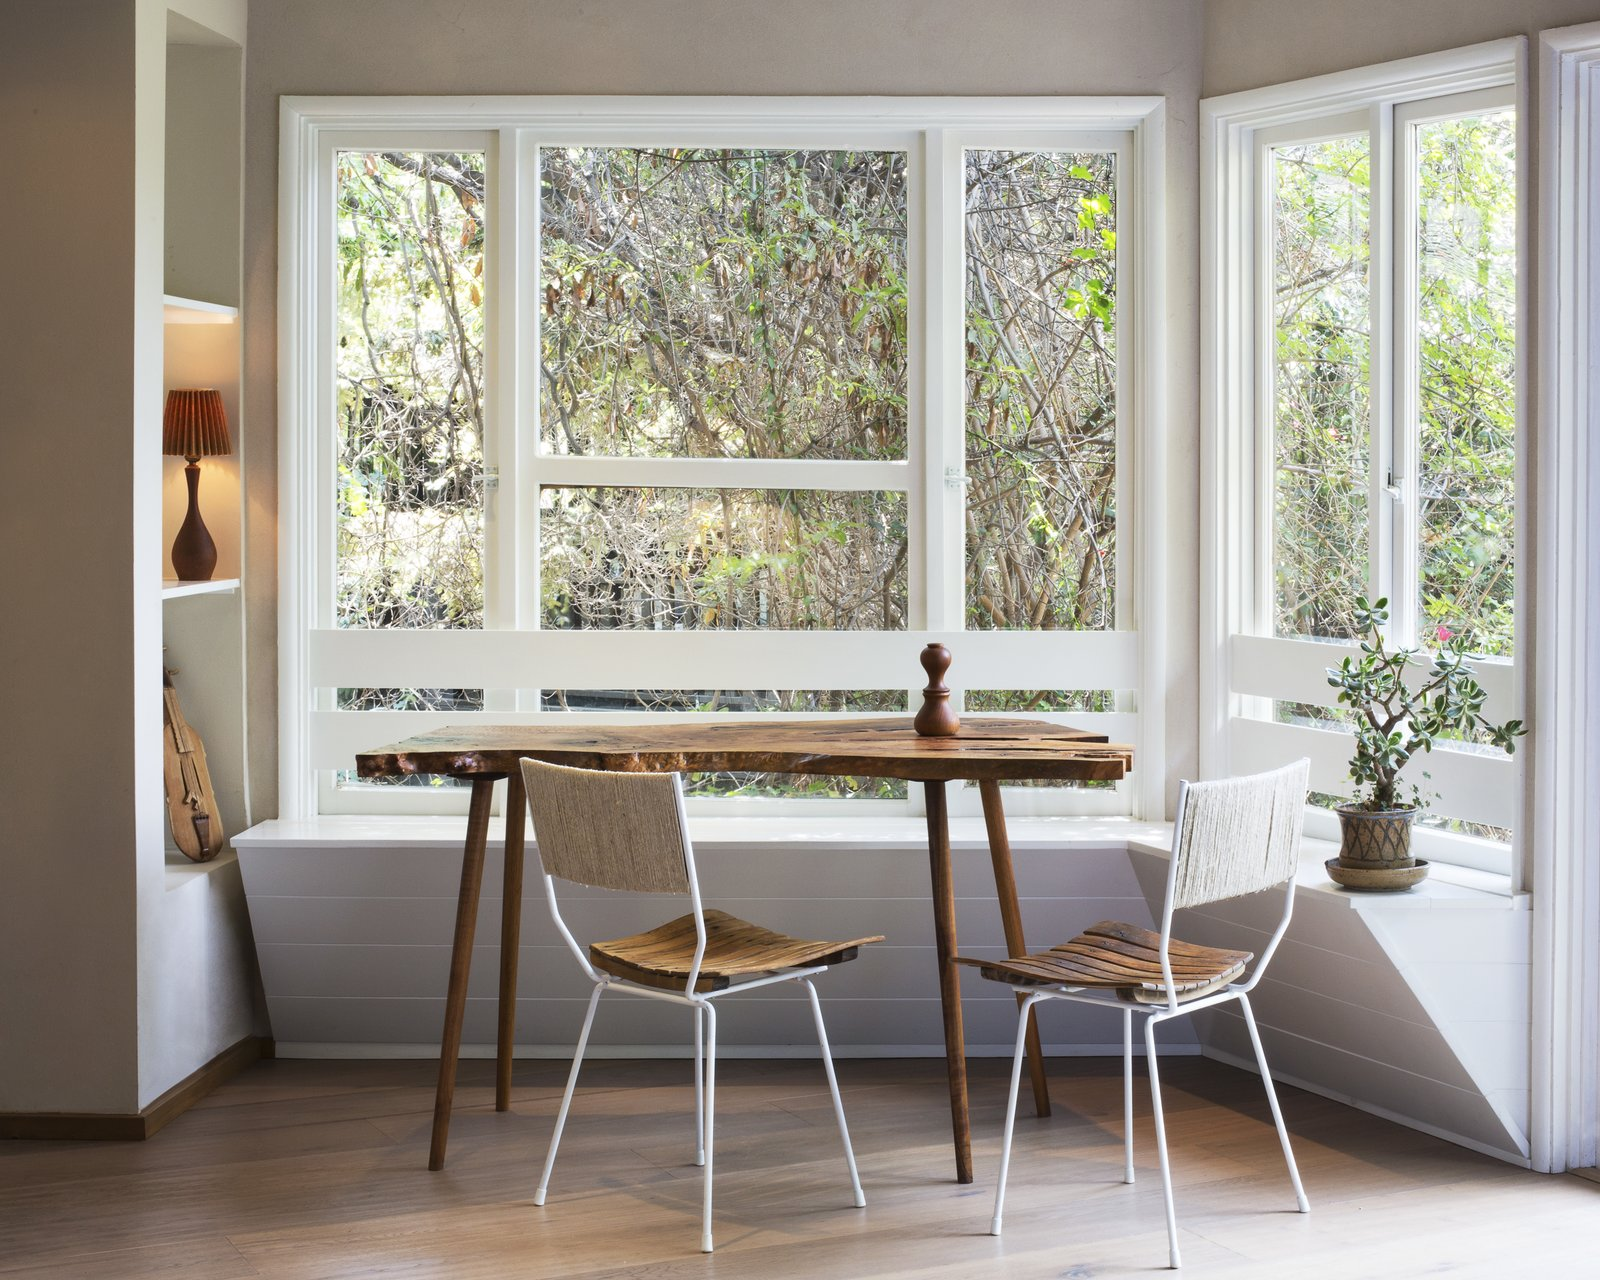 A beautifully simple shiplap built-in banquette balances perfectly with a live edge table, making the most of the abundant natural light.  Photo 9 of 9 in 5 Main Ingredients For Cooking Up a Homey Kitchen Nook